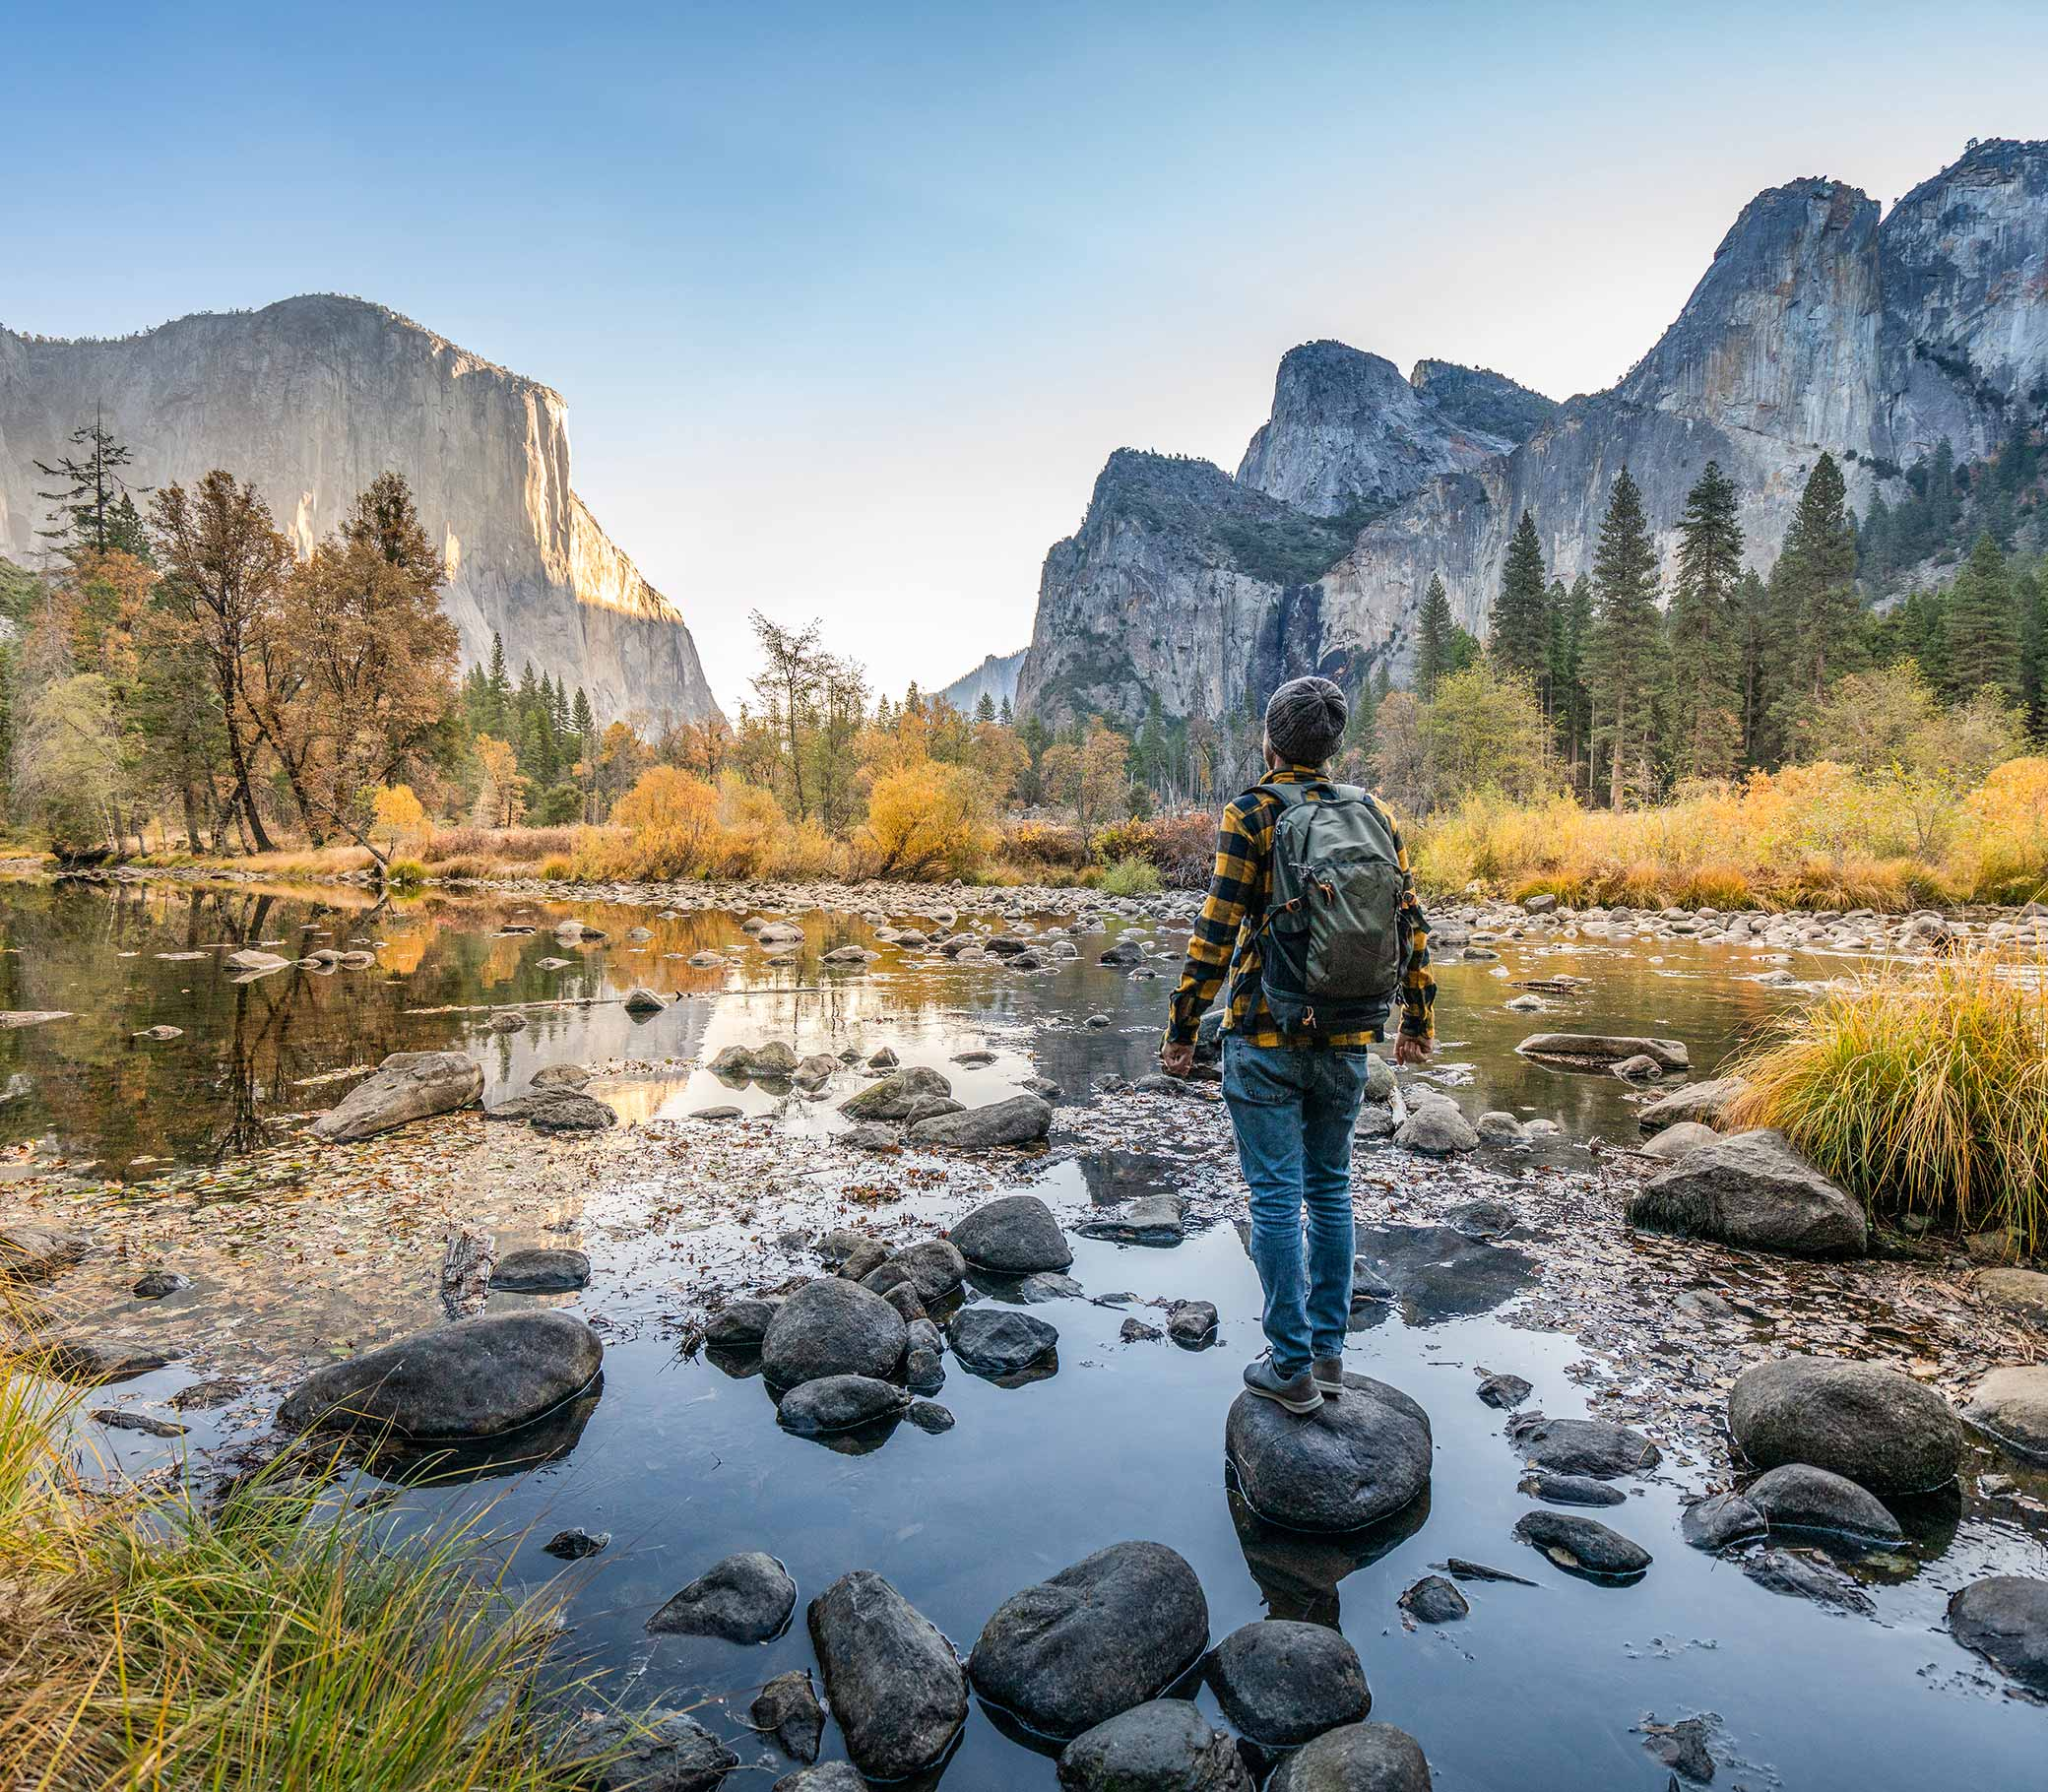 Young man contemplating Yosemite valley from the river, reflections on water surface